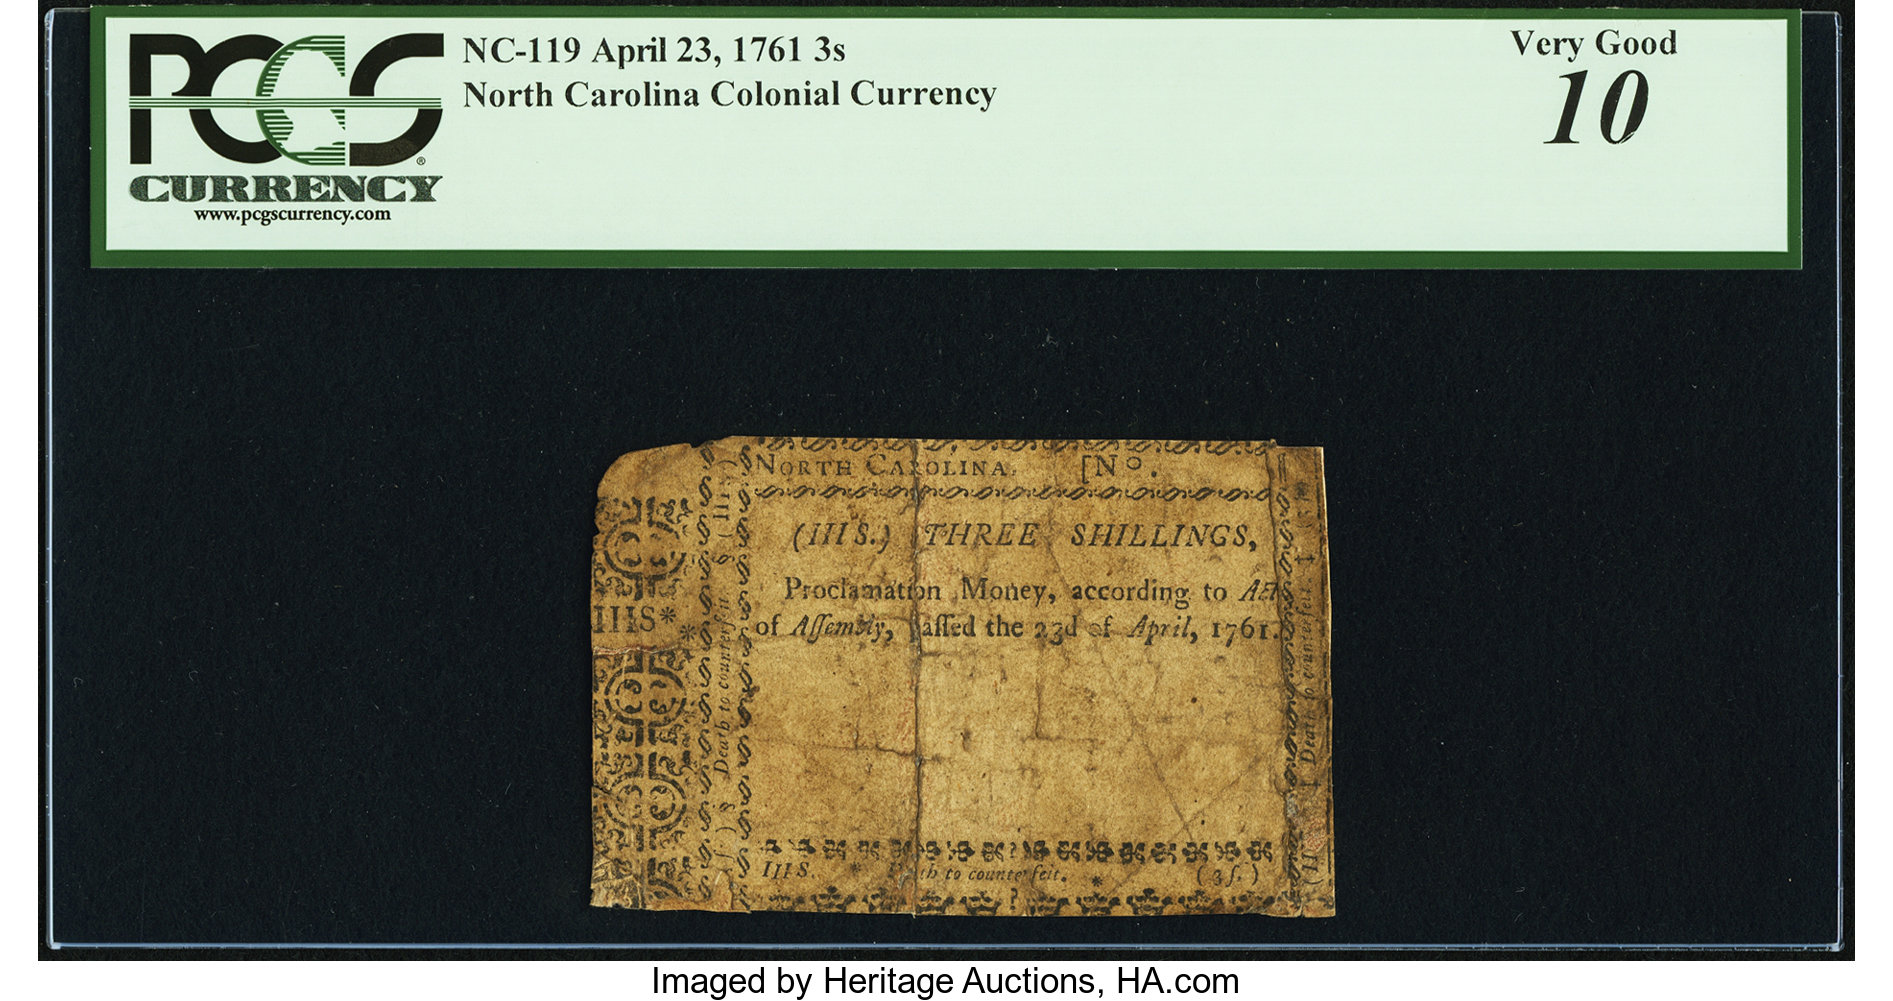 sample image for 1761 23-Apr 3s (Fr.# NC119)